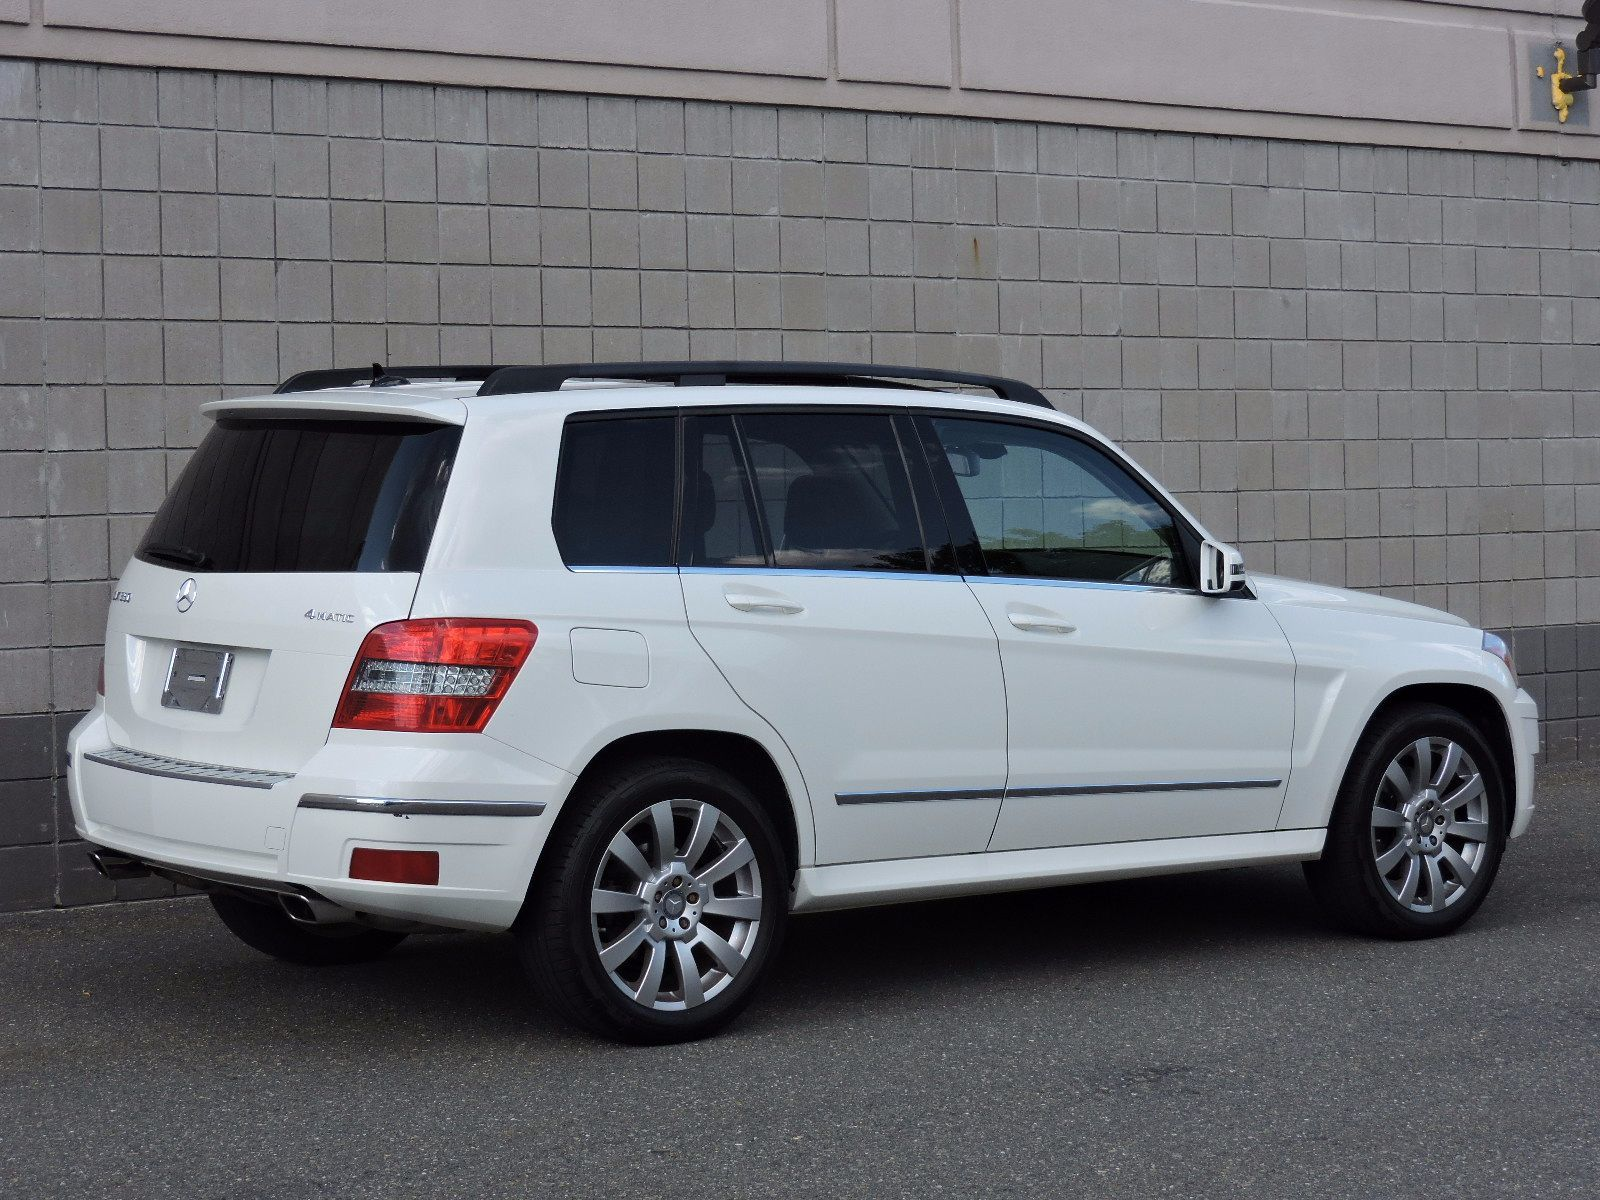 Used 2011 mercedes benz glk class at saugus auto mall for Mercedes benz glk350 2011